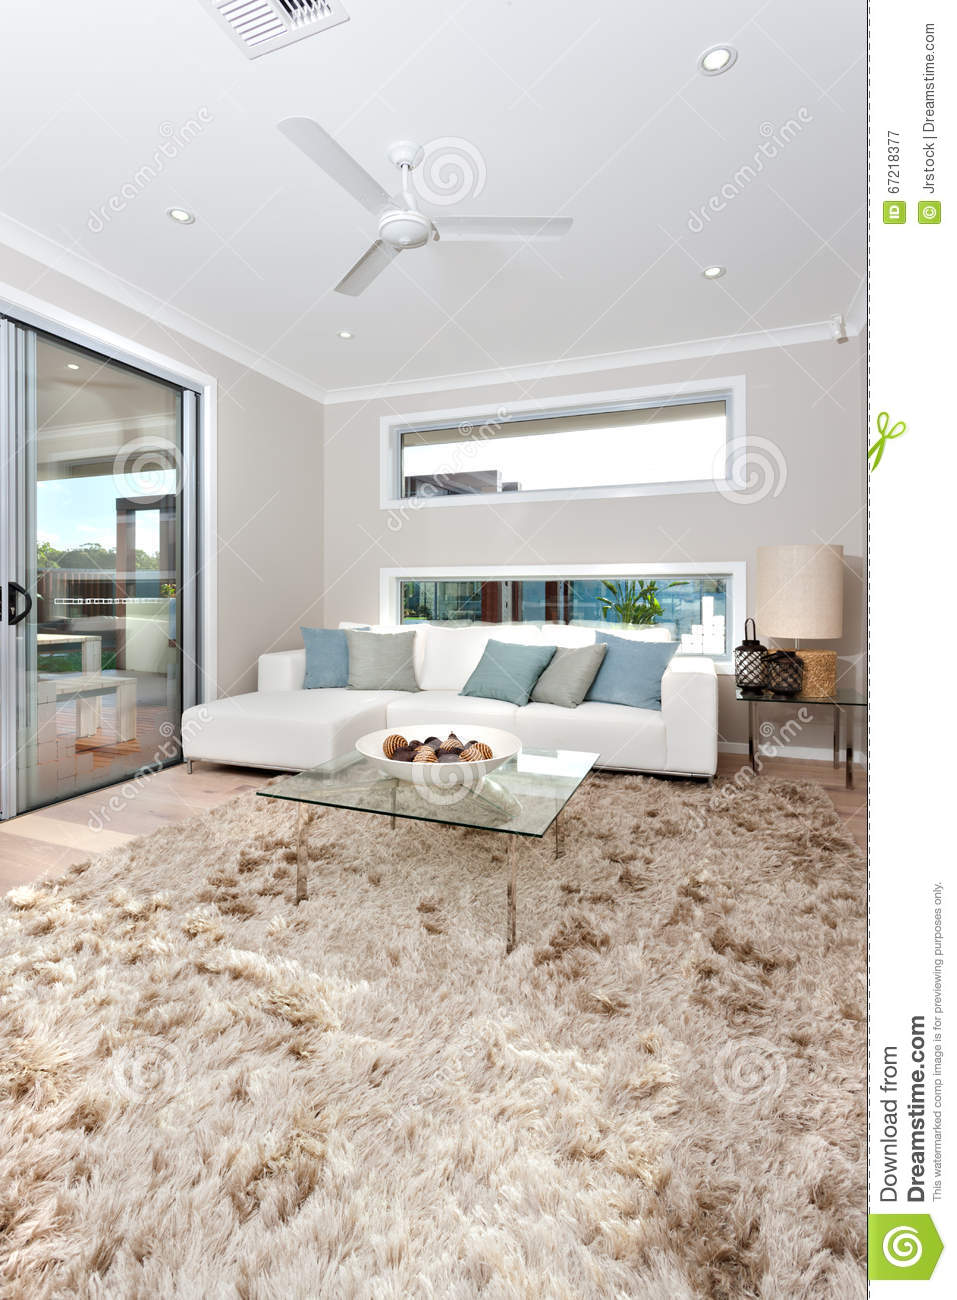 Closeup Of A Fur Carpet On The Wooden Floor In Modern Living Roo ...